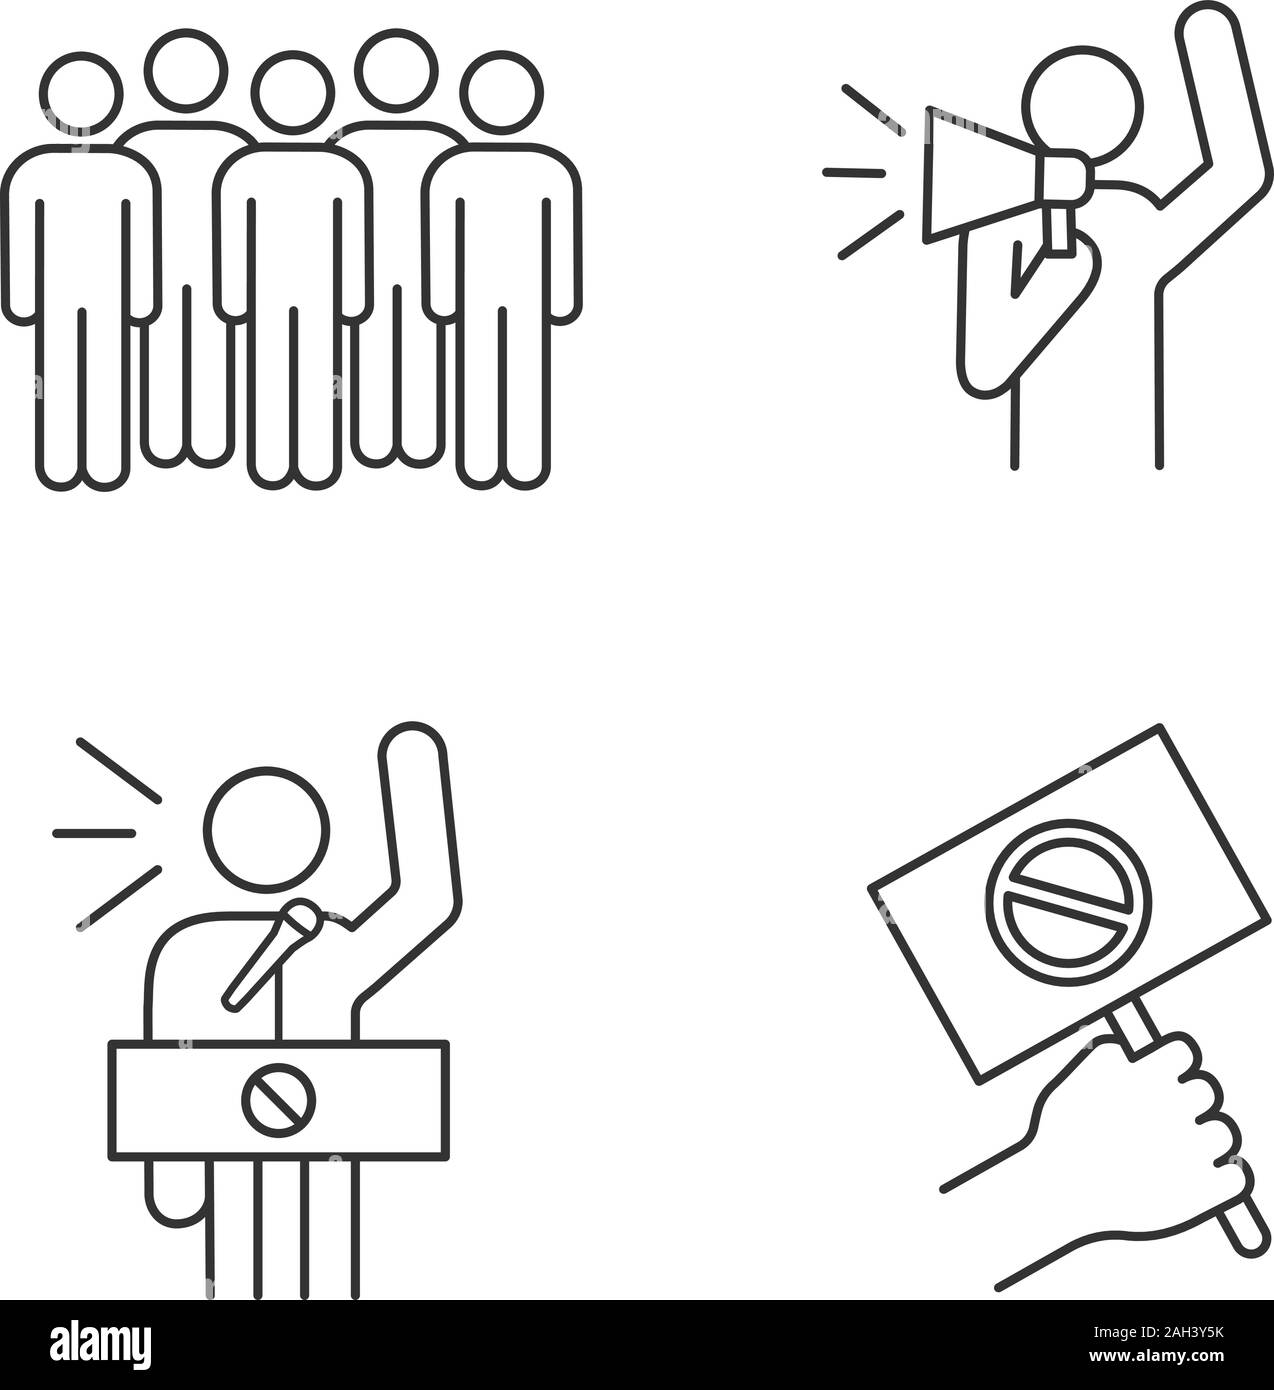 Protest action linear icons set. Meeting, protester, protest banner, speech. Thin line contour symbols. Isolated vector outline illustrations. Editabl Stock Vector